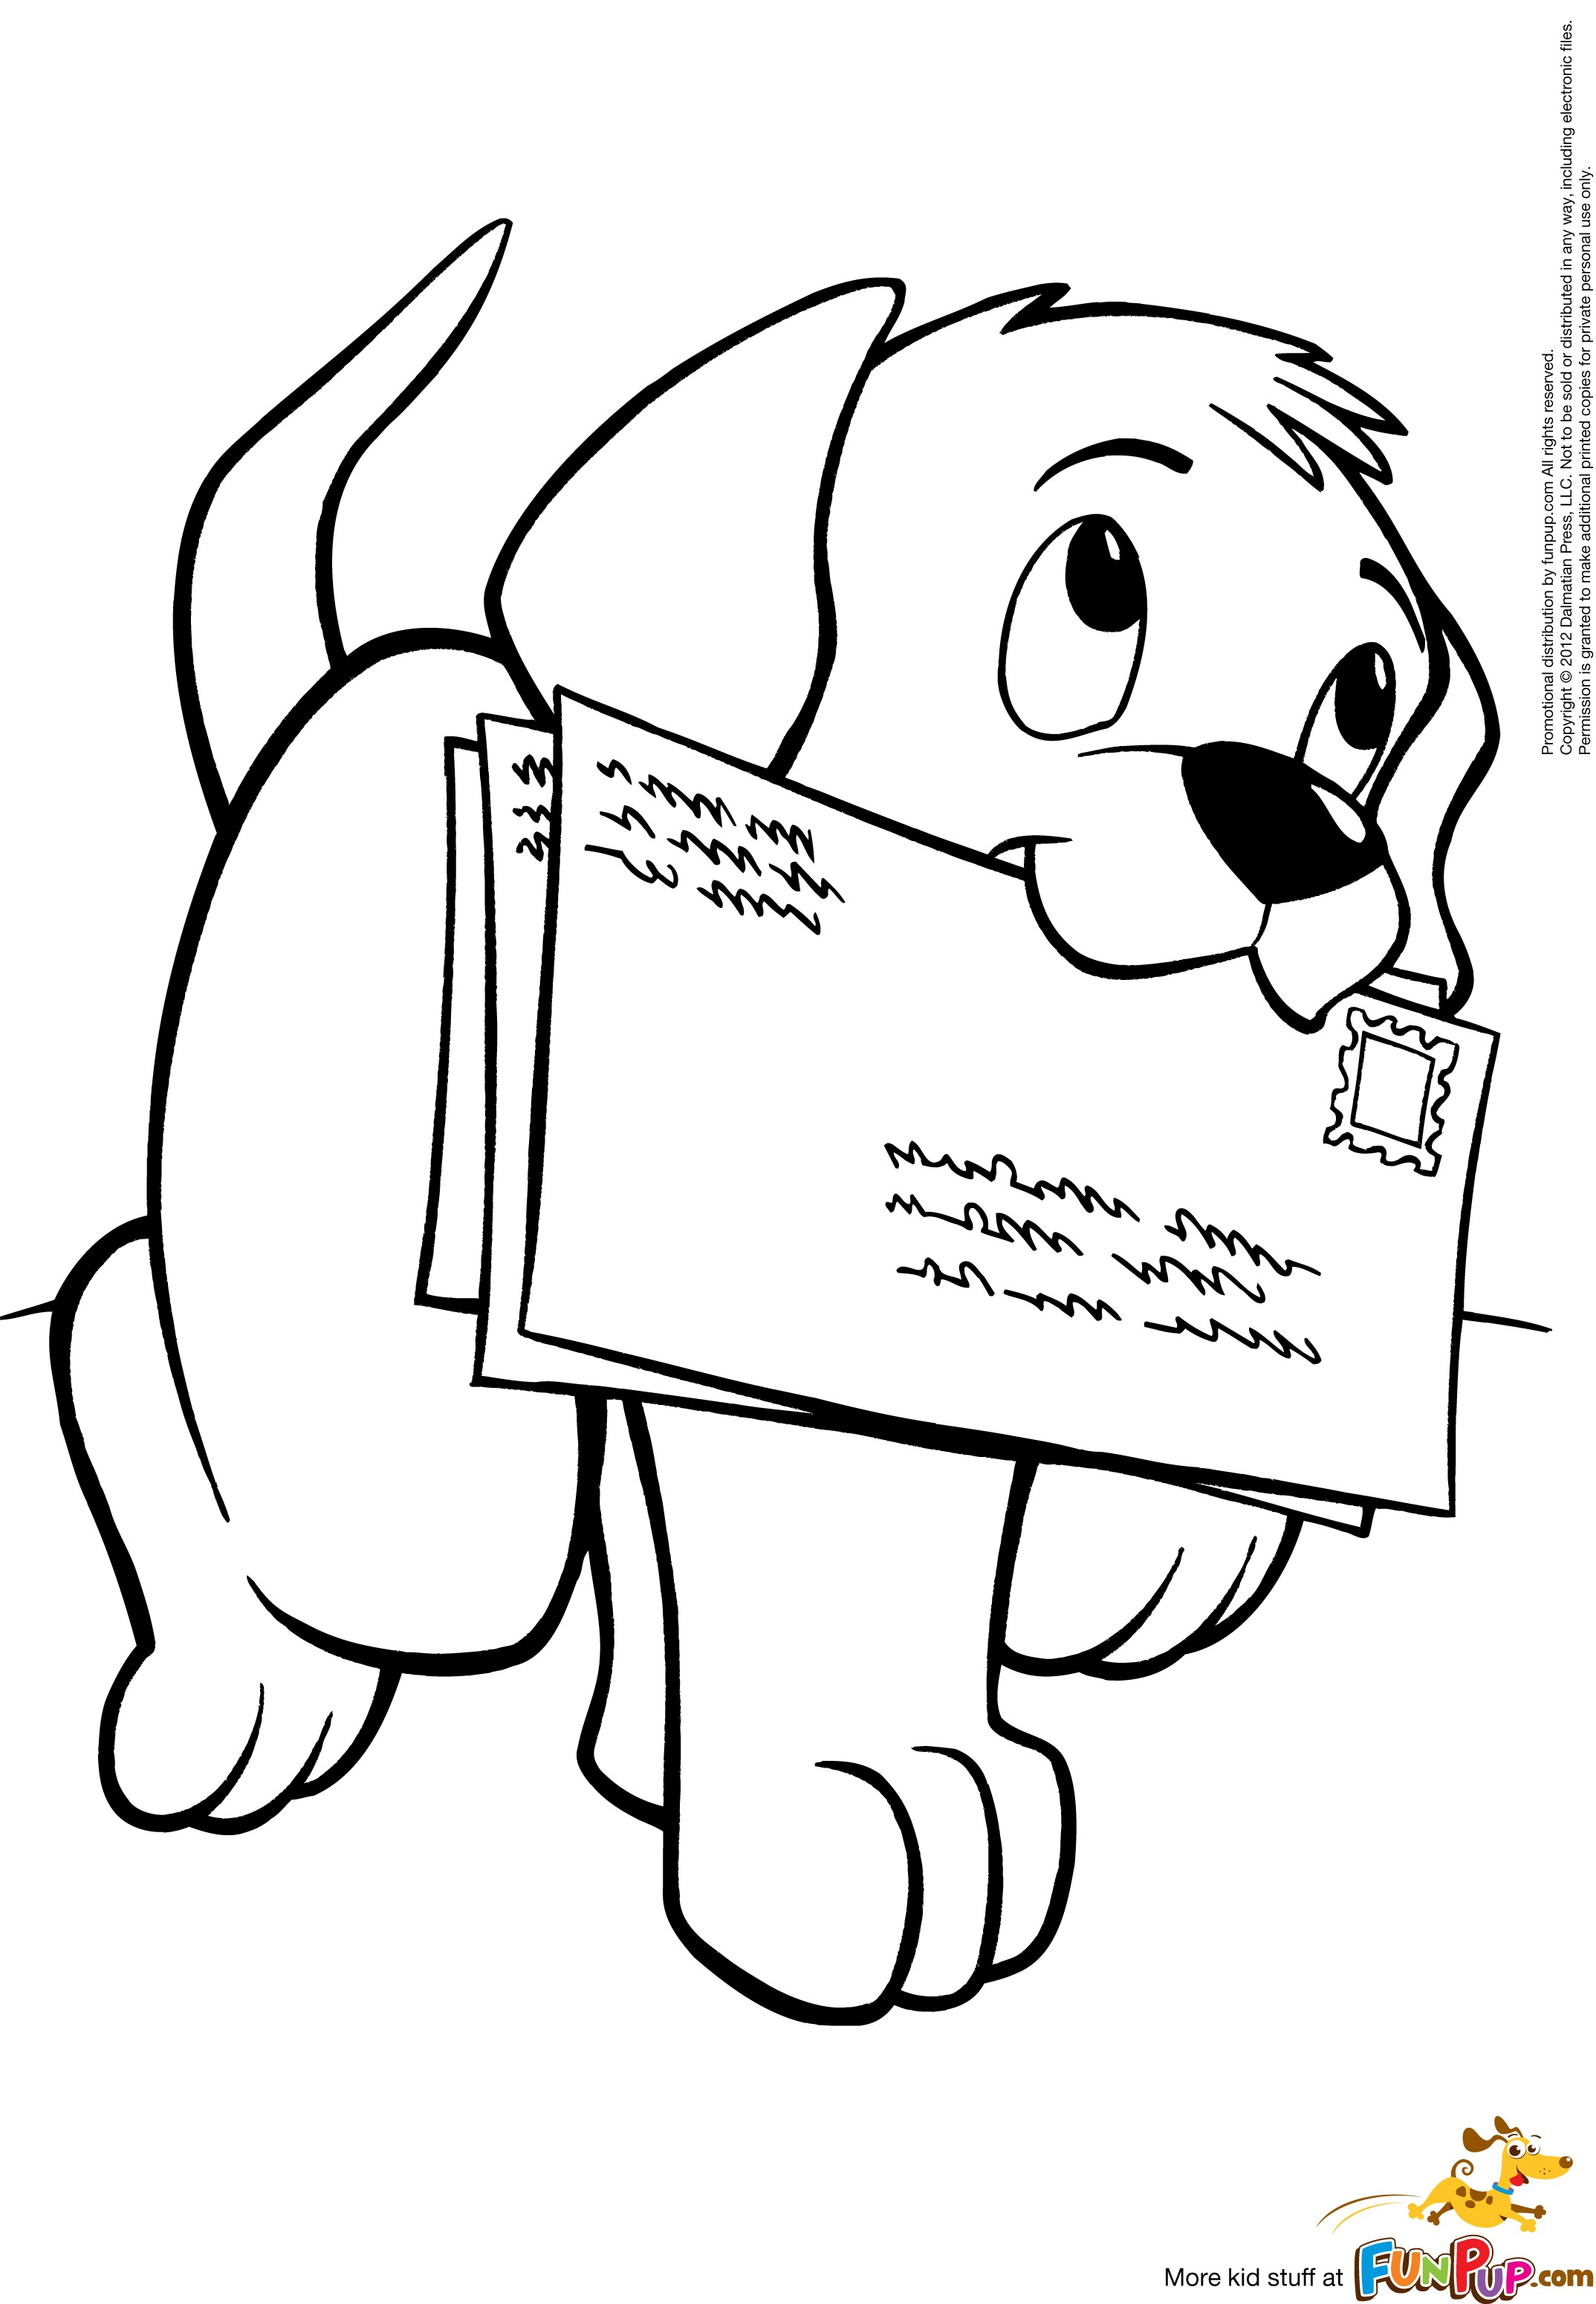 cute cartoon dog coloring pages - photo#37